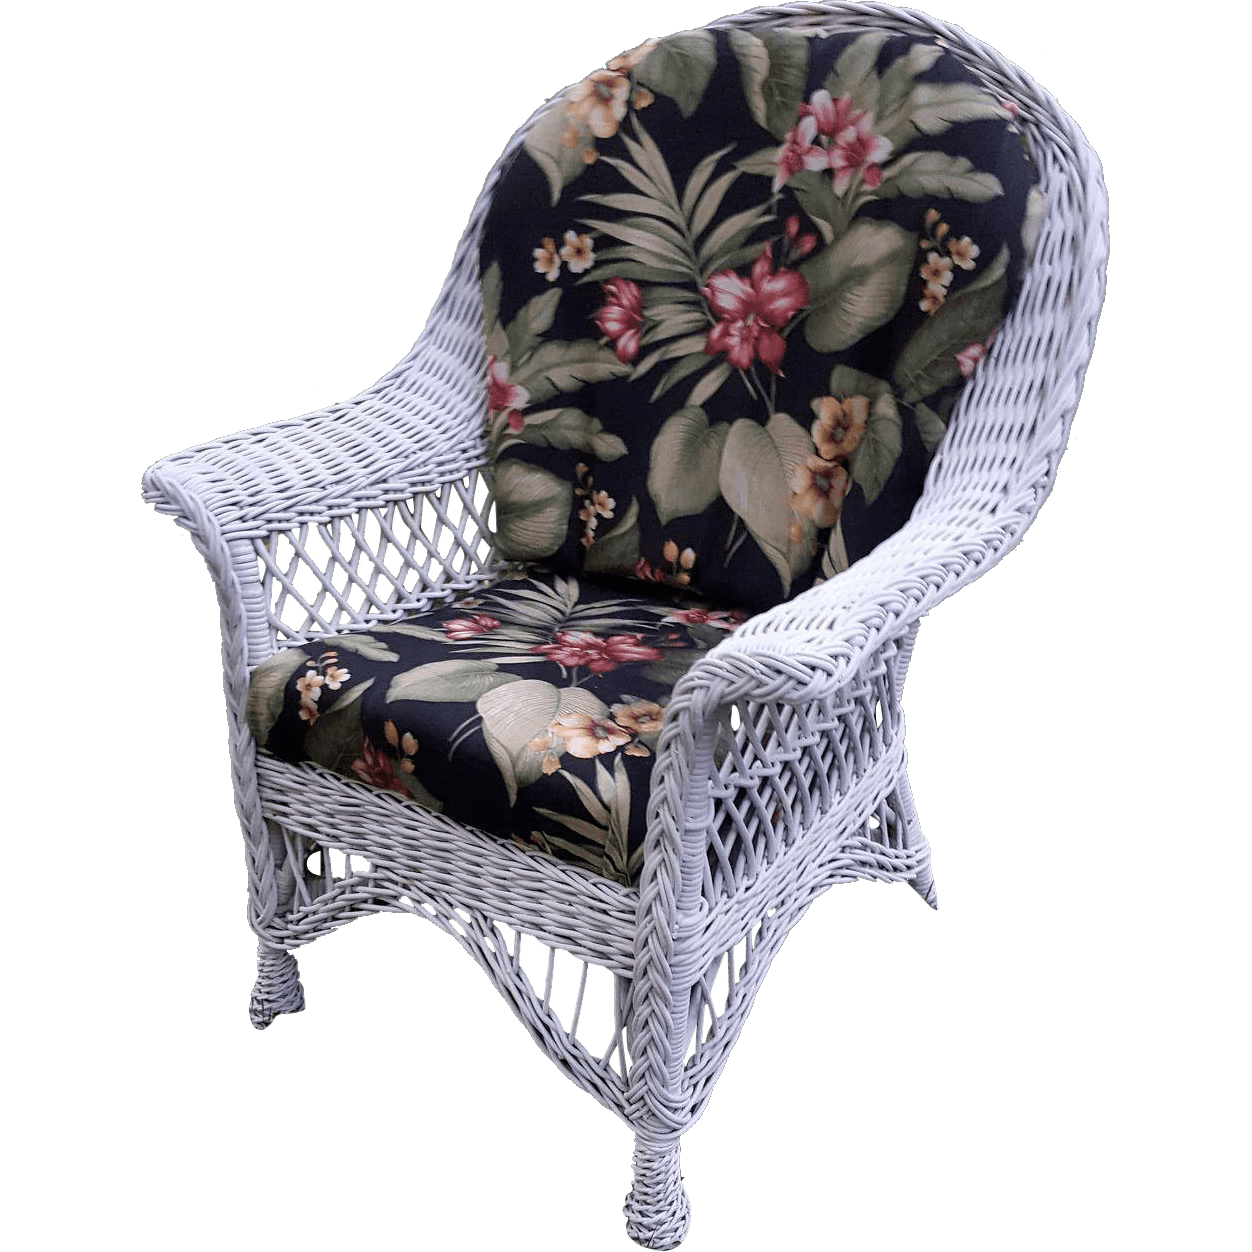 Vintage Bar Harbor Wicker Arm Chair Circa 1920s from